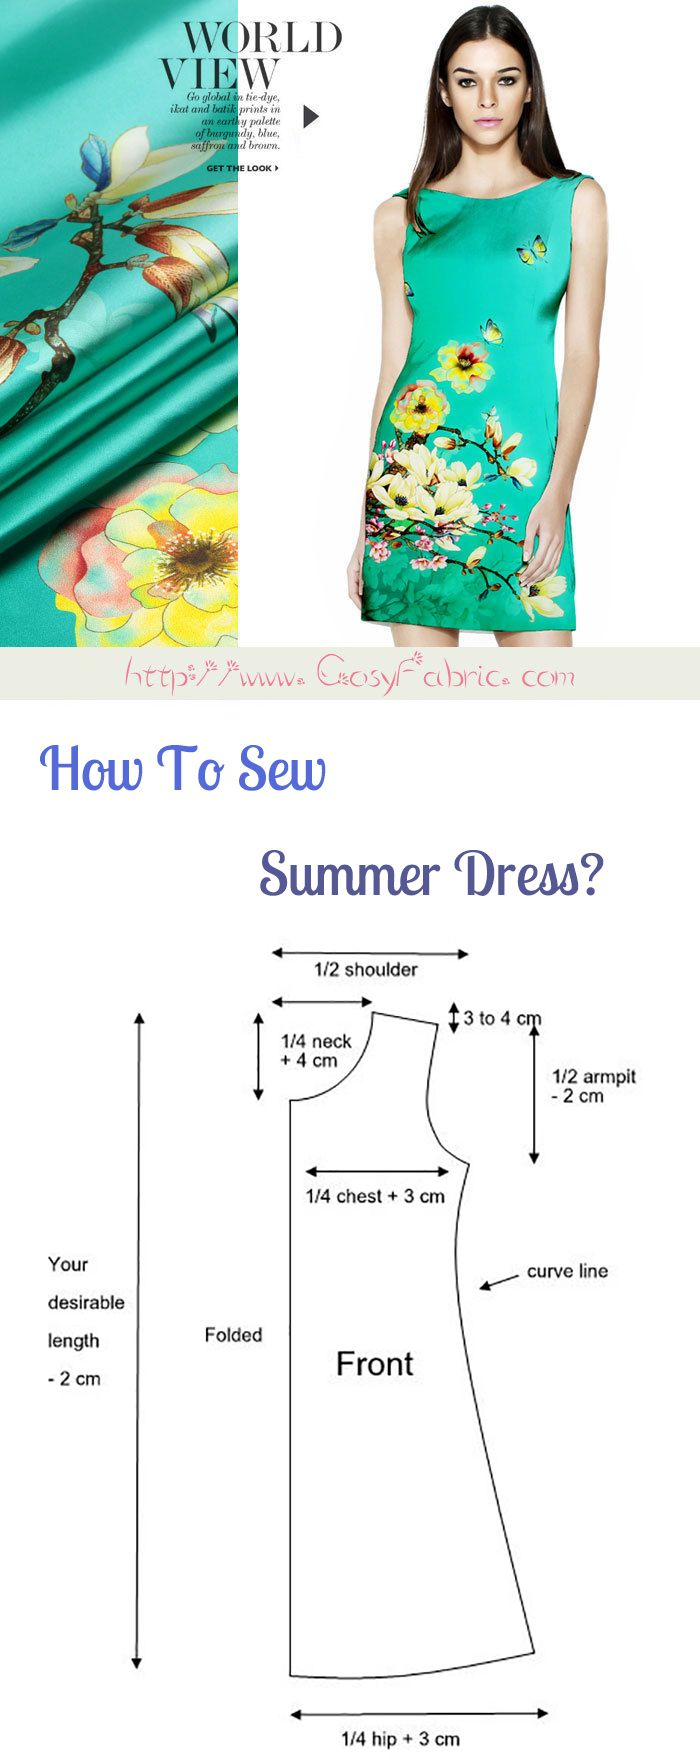 How To Make An Easy Dress. #dress #sewing #fashion